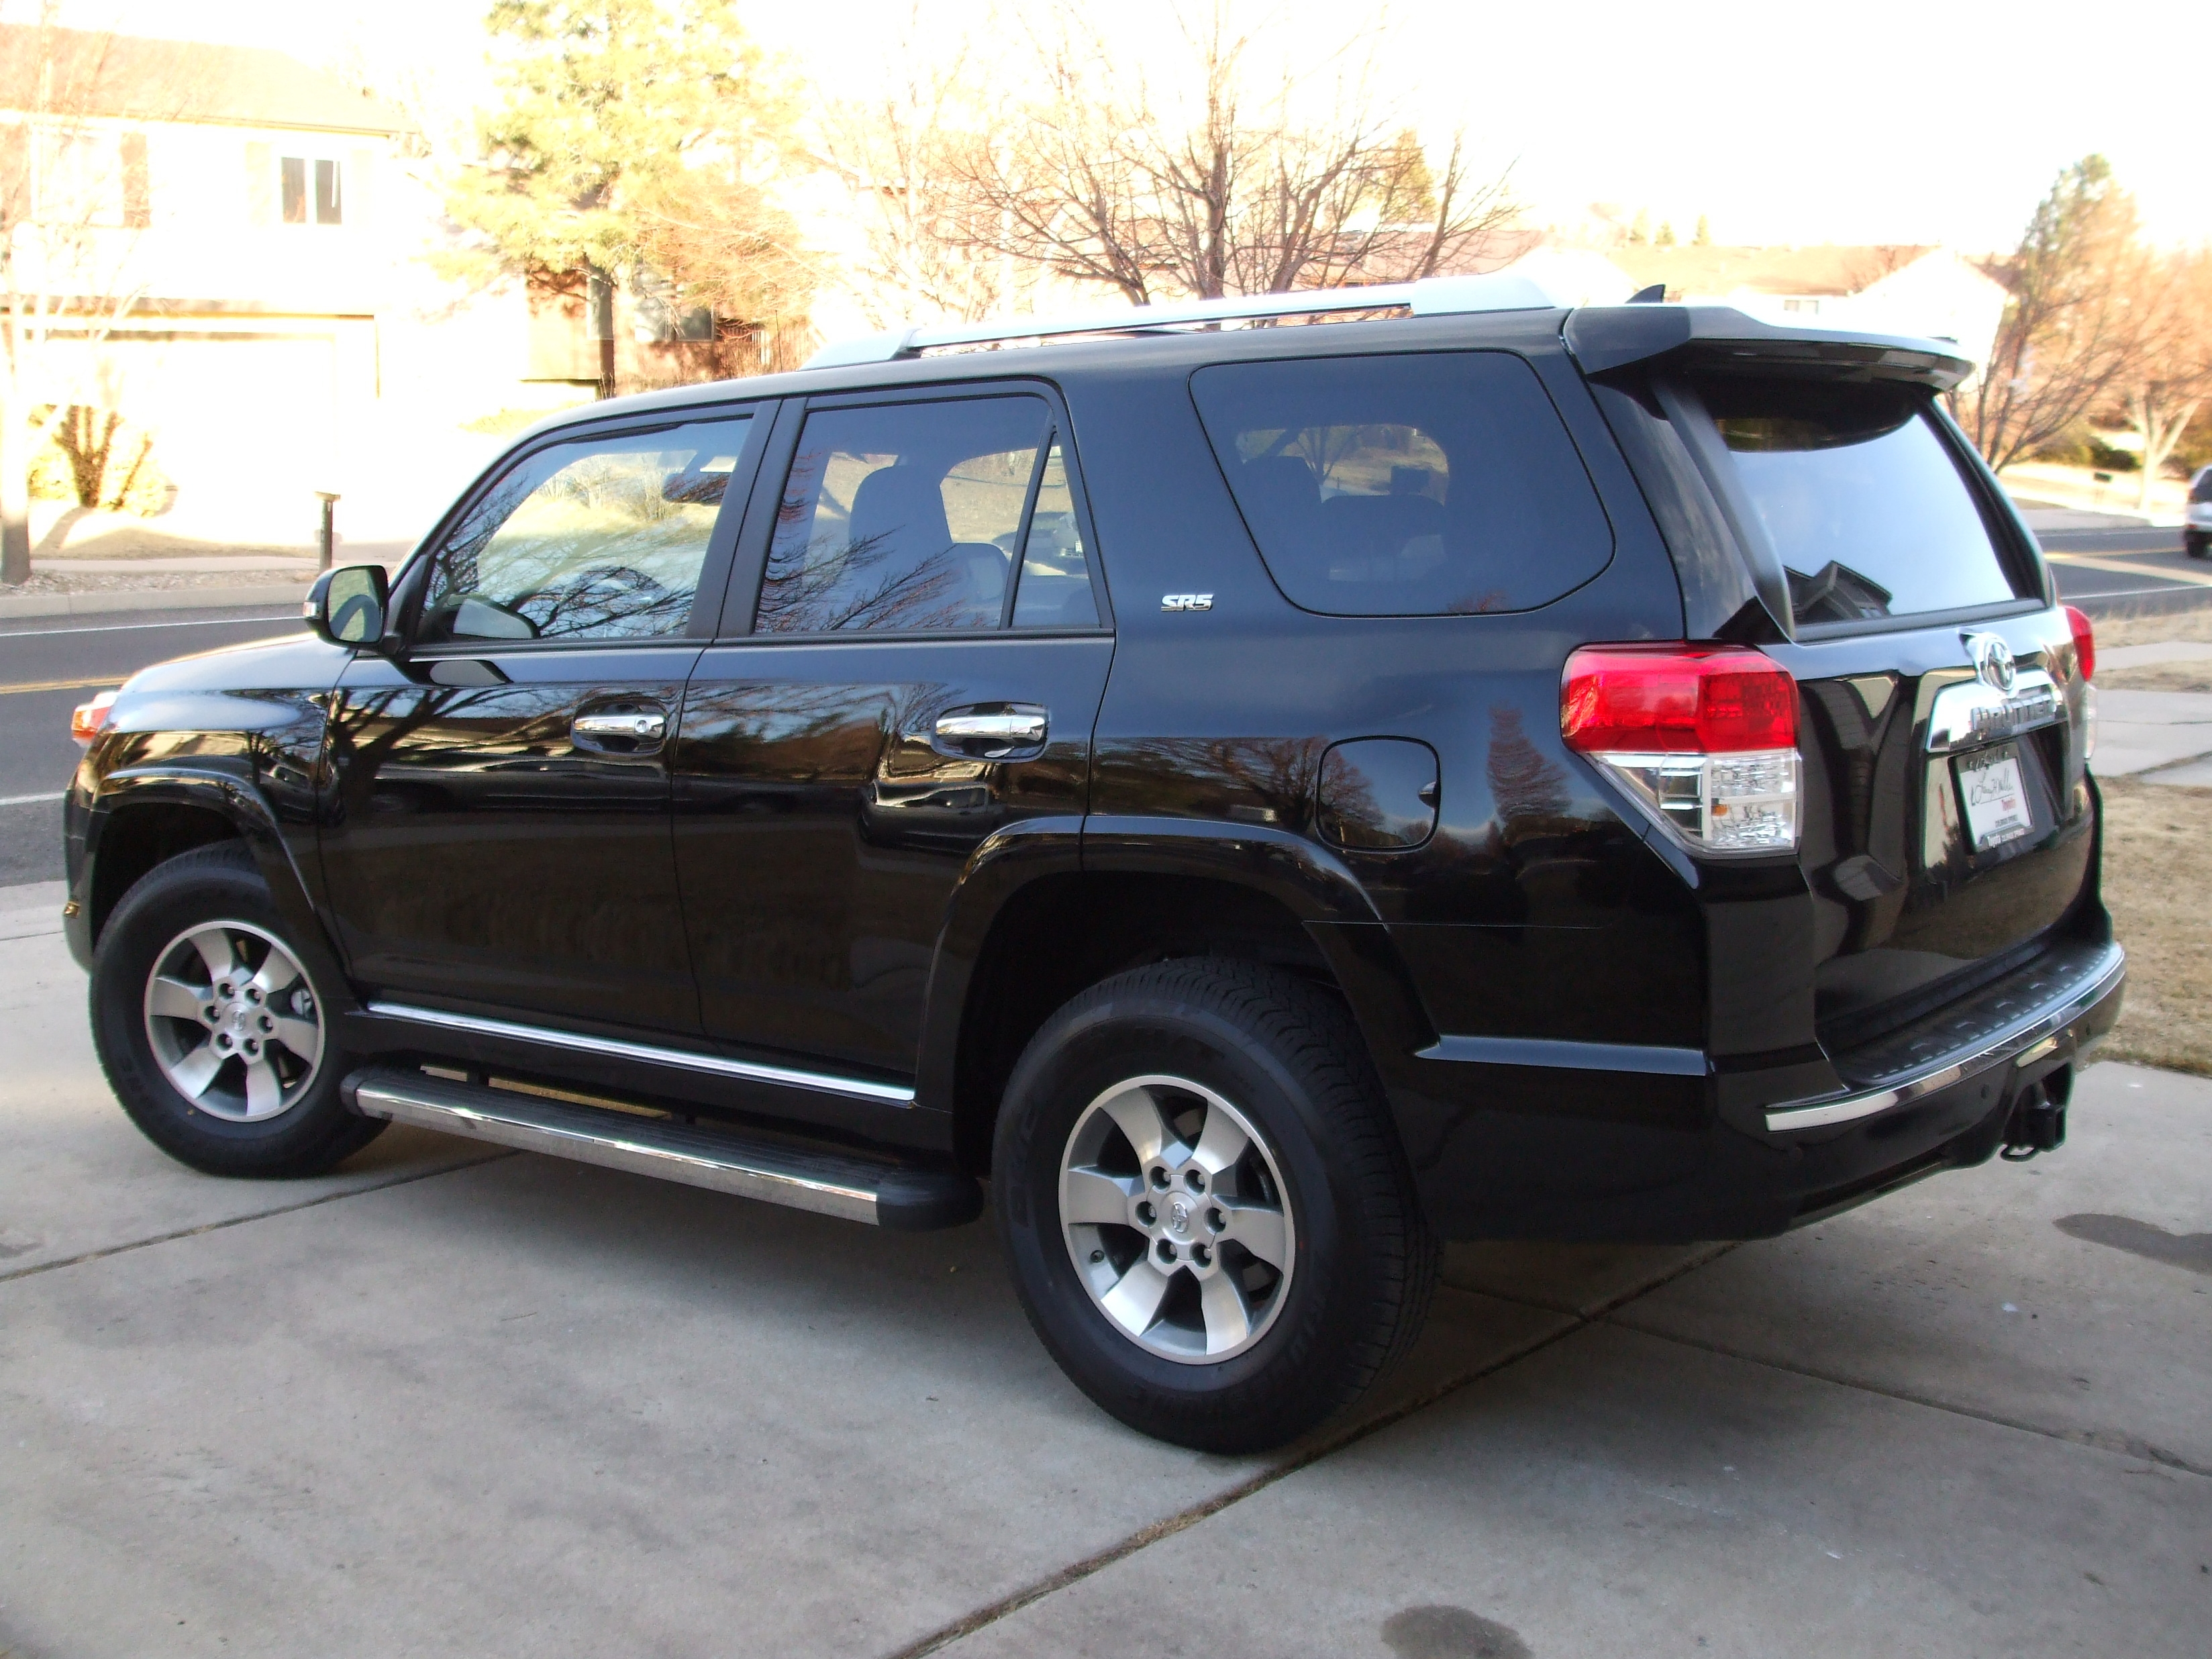 63rod 2011 toyota 4runner specs photos modification info. Black Bedroom Furniture Sets. Home Design Ideas